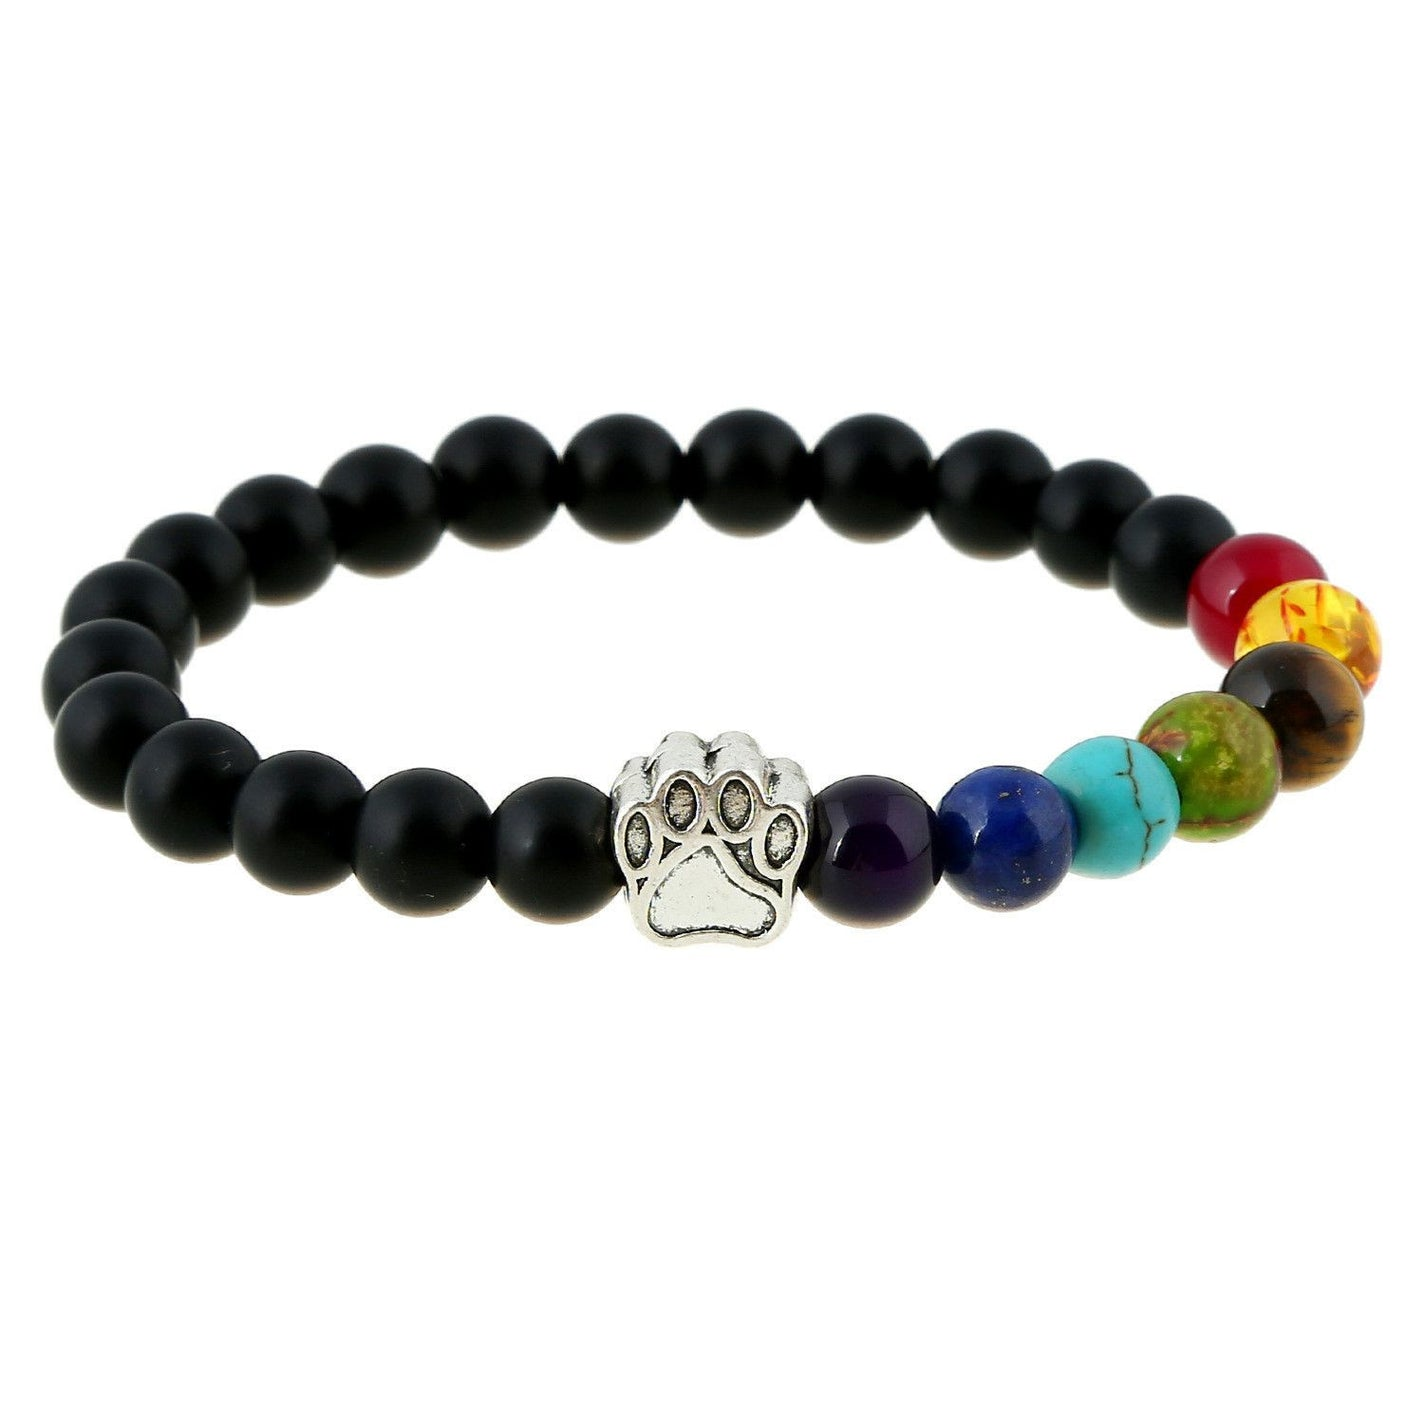 Natural Stone Bead 7 Chakra Healing Balance Bracelet with Dog Paw-Themed Gifts-ASLBL-Pets Hub Home